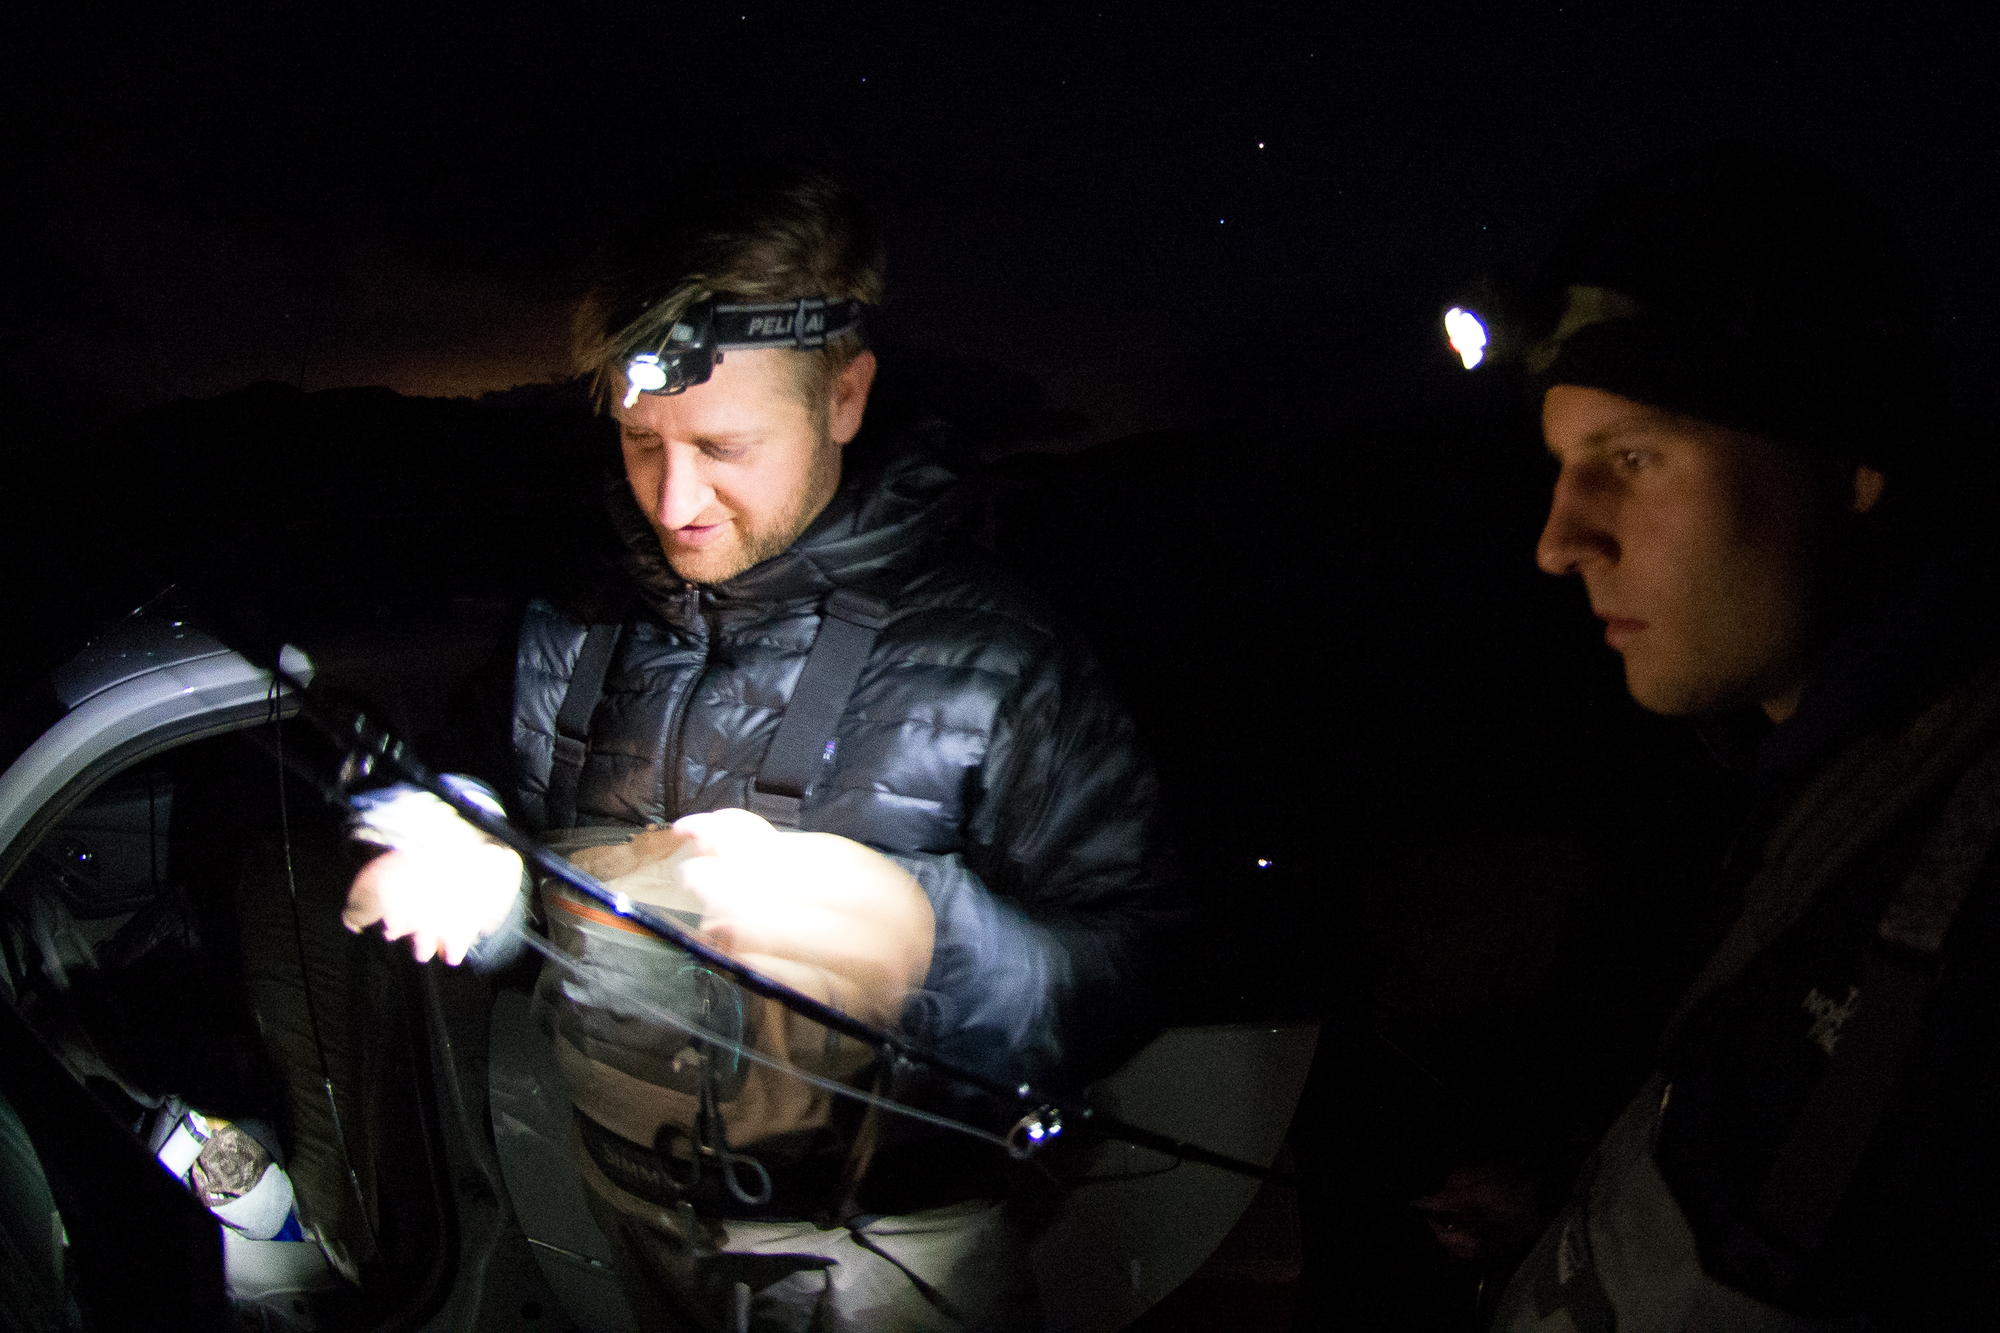 Weston Gleave helps with a few additional lumens as Kyle Graf attempts to pick out a winning leader in the dark.